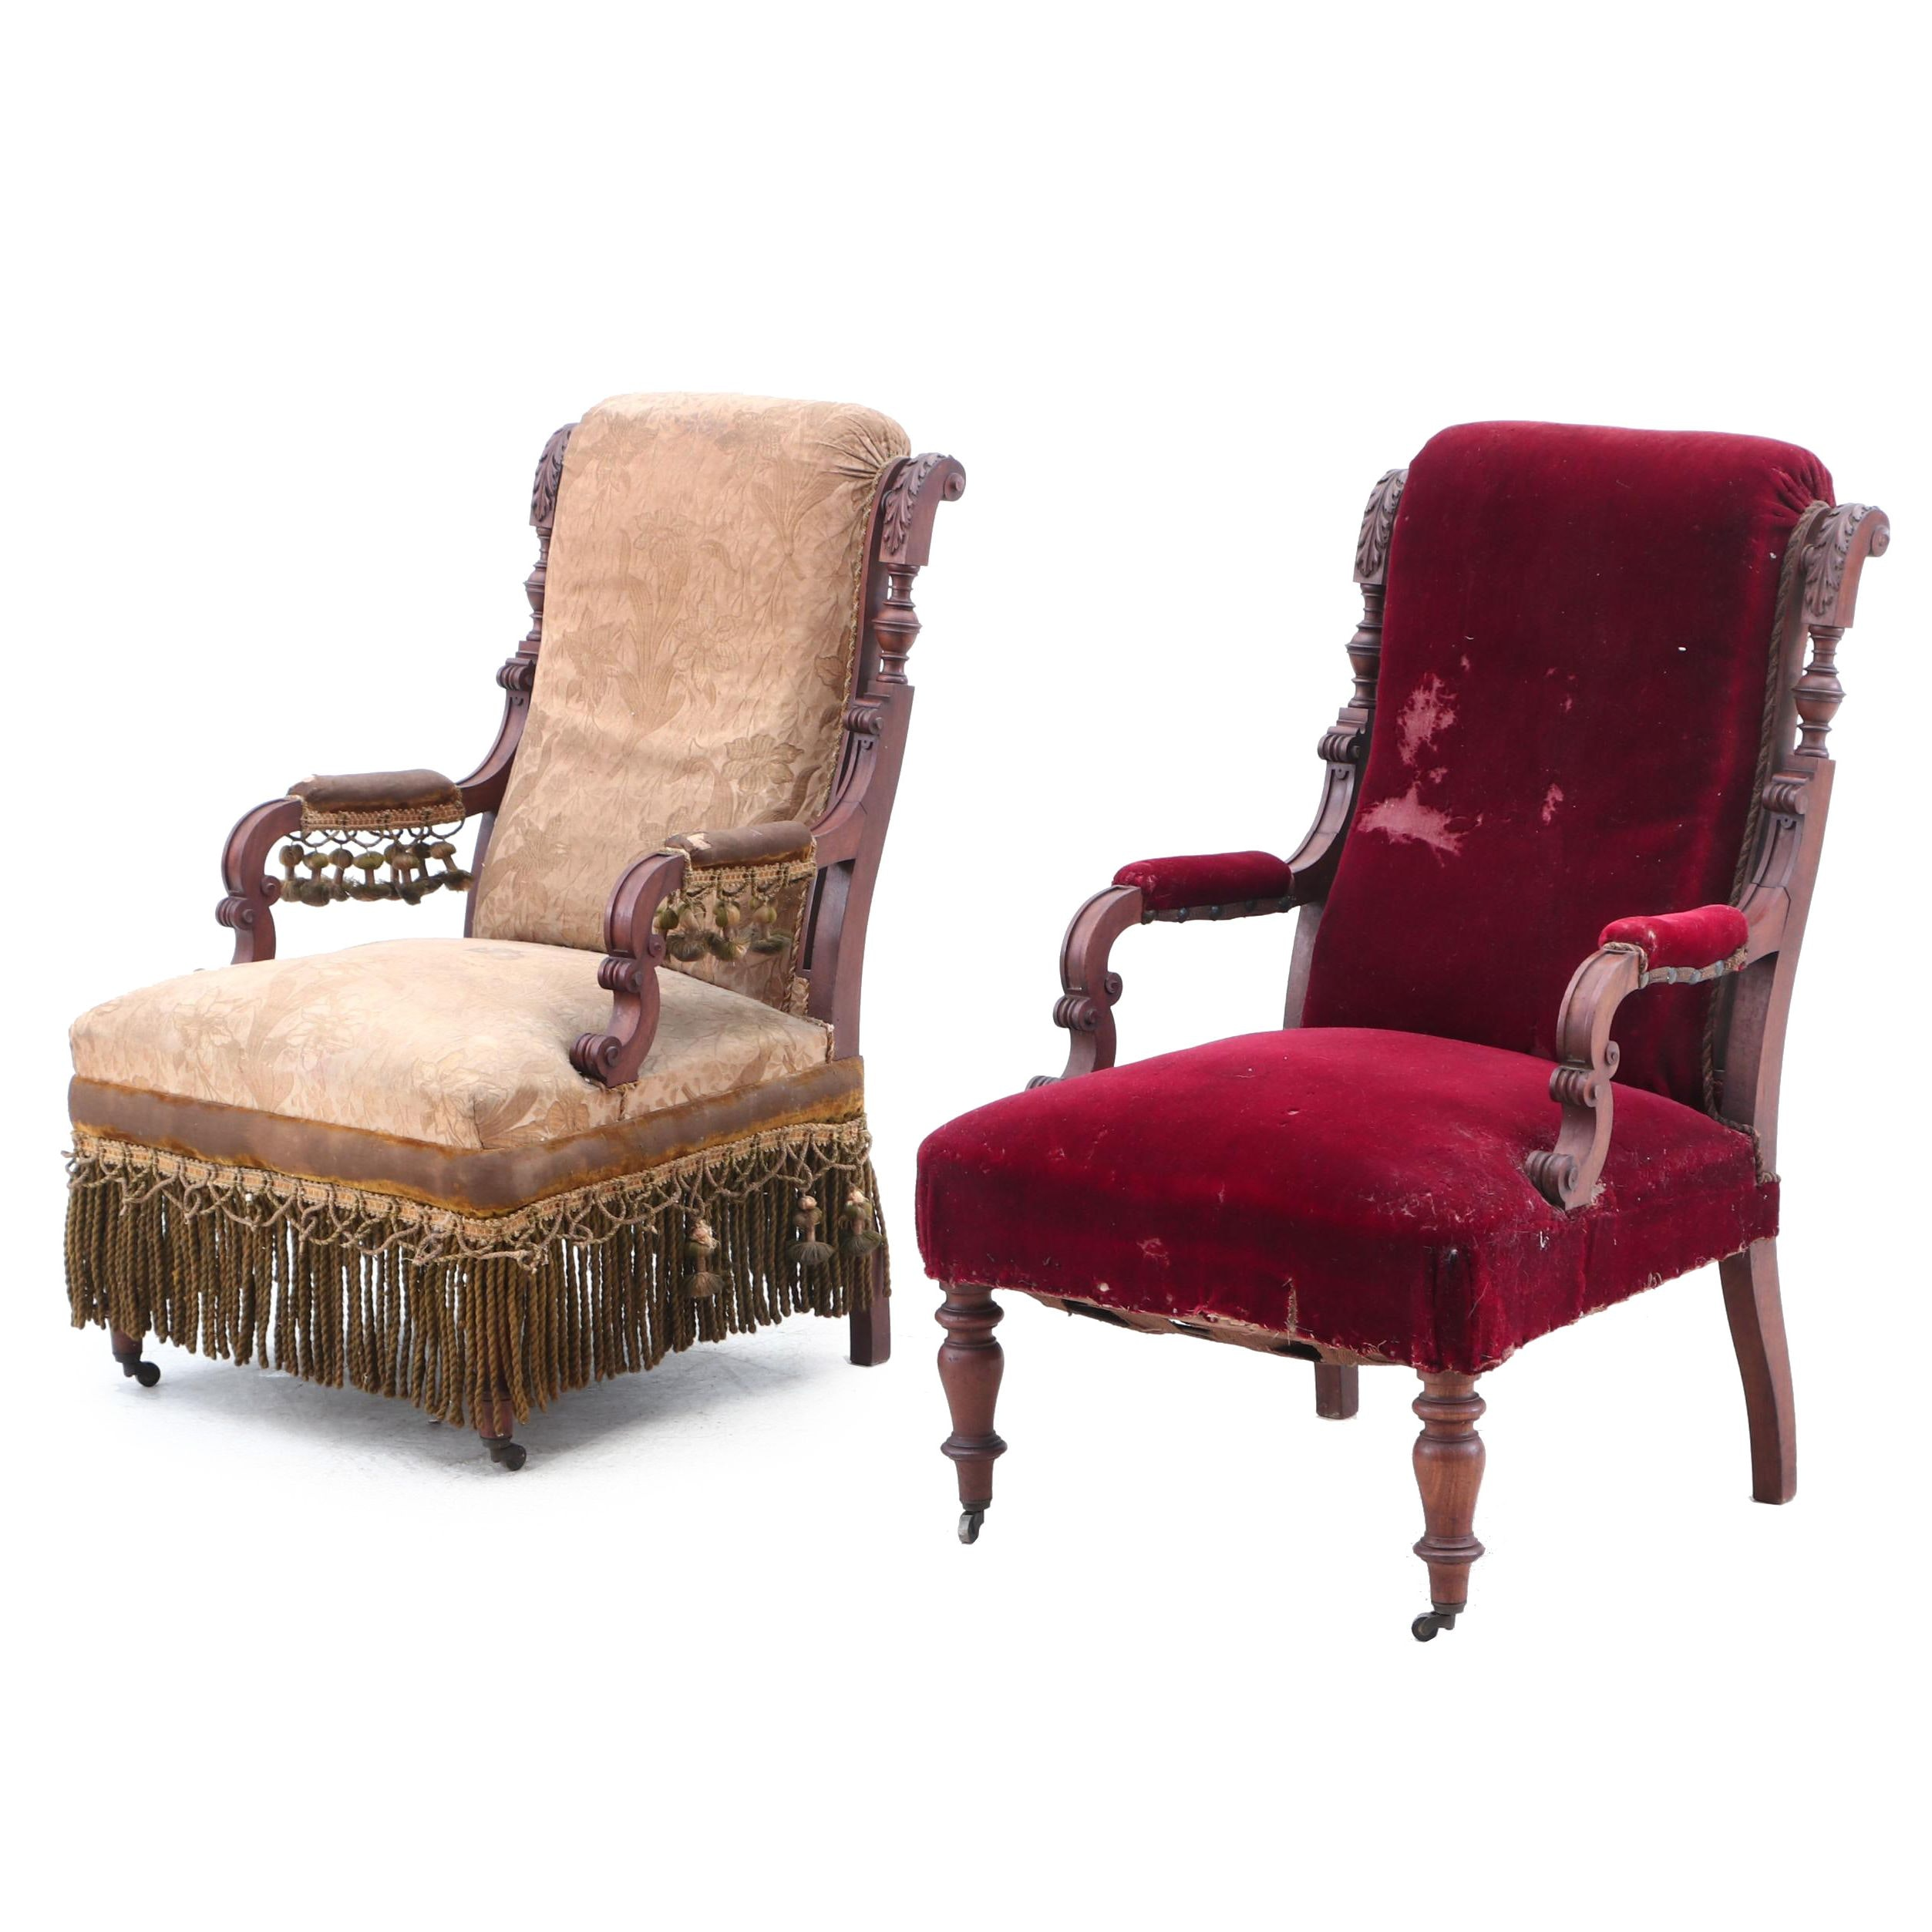 Pair of Victorian Carved Walnut Upholstered Armchairs, Late 19th Century